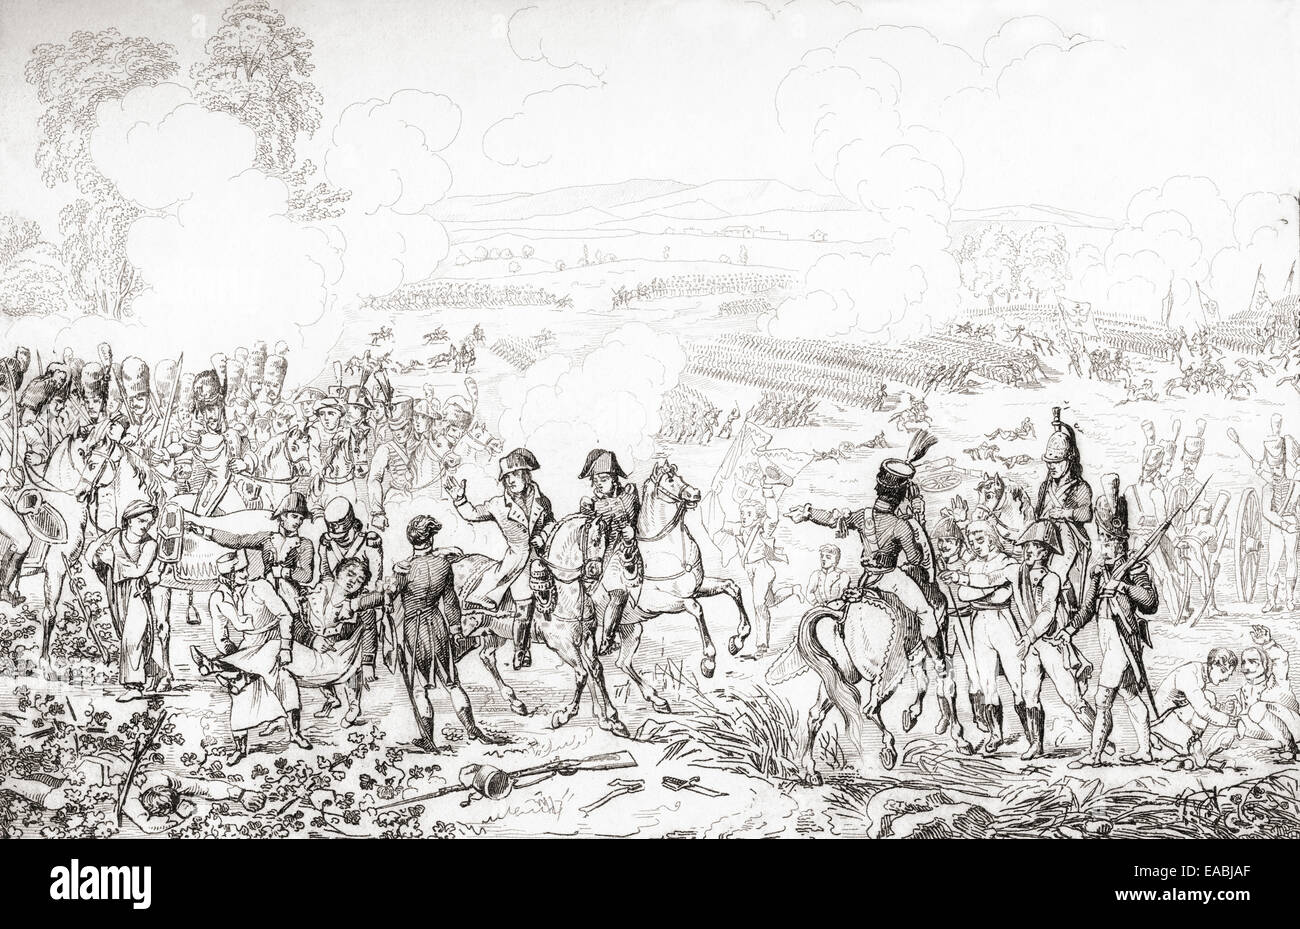 The Battle of Marengo, 14 June 1800, fought between French and Austrian Forces. - Stock Image